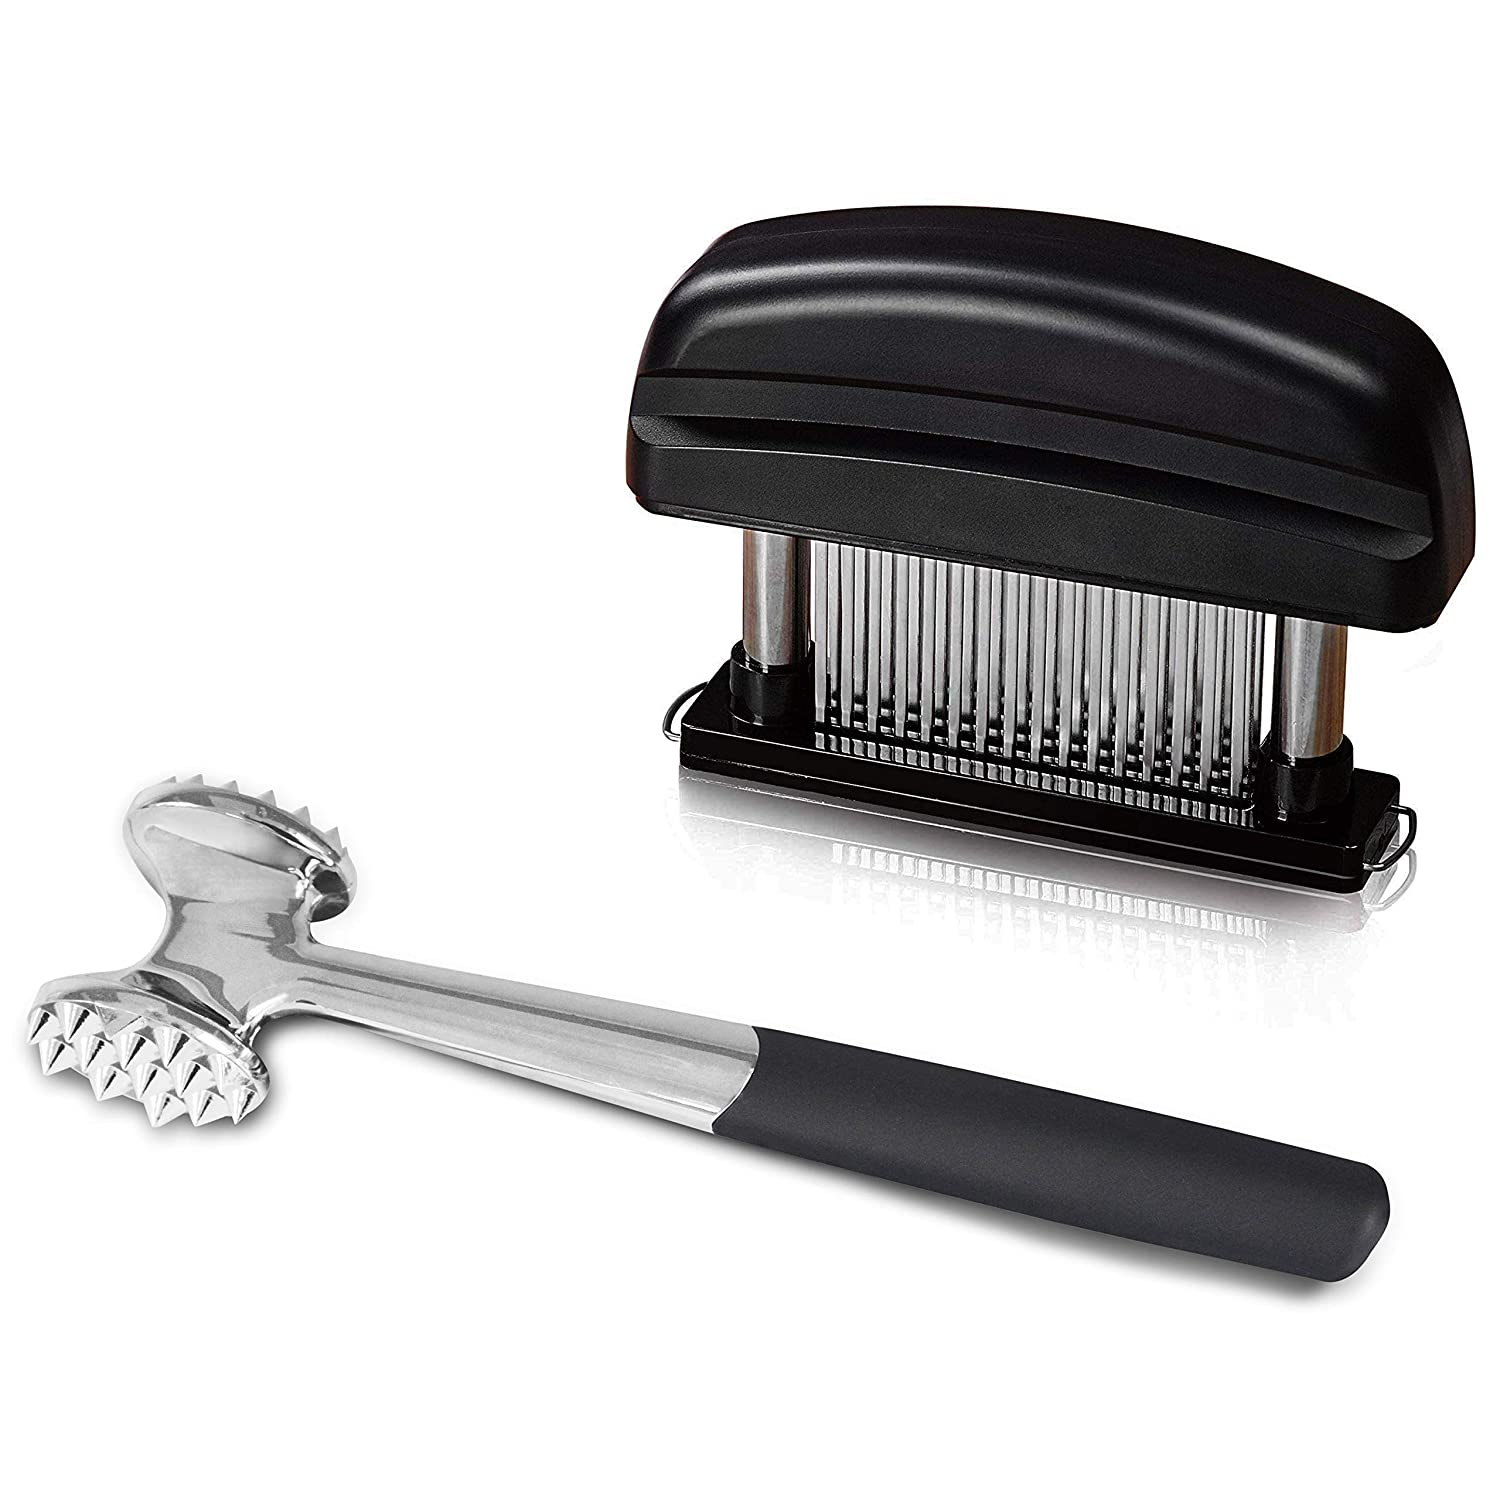 Elabo Kitchen Meat Tenderizer Sets - Heavy Duty Manual Hammer Mallet Tool and Meat Tenderizer Needle Tool with 48 Stainless Steel Sharp Blades For Steak, Chicken, Fish, Pork, Beef, Veal